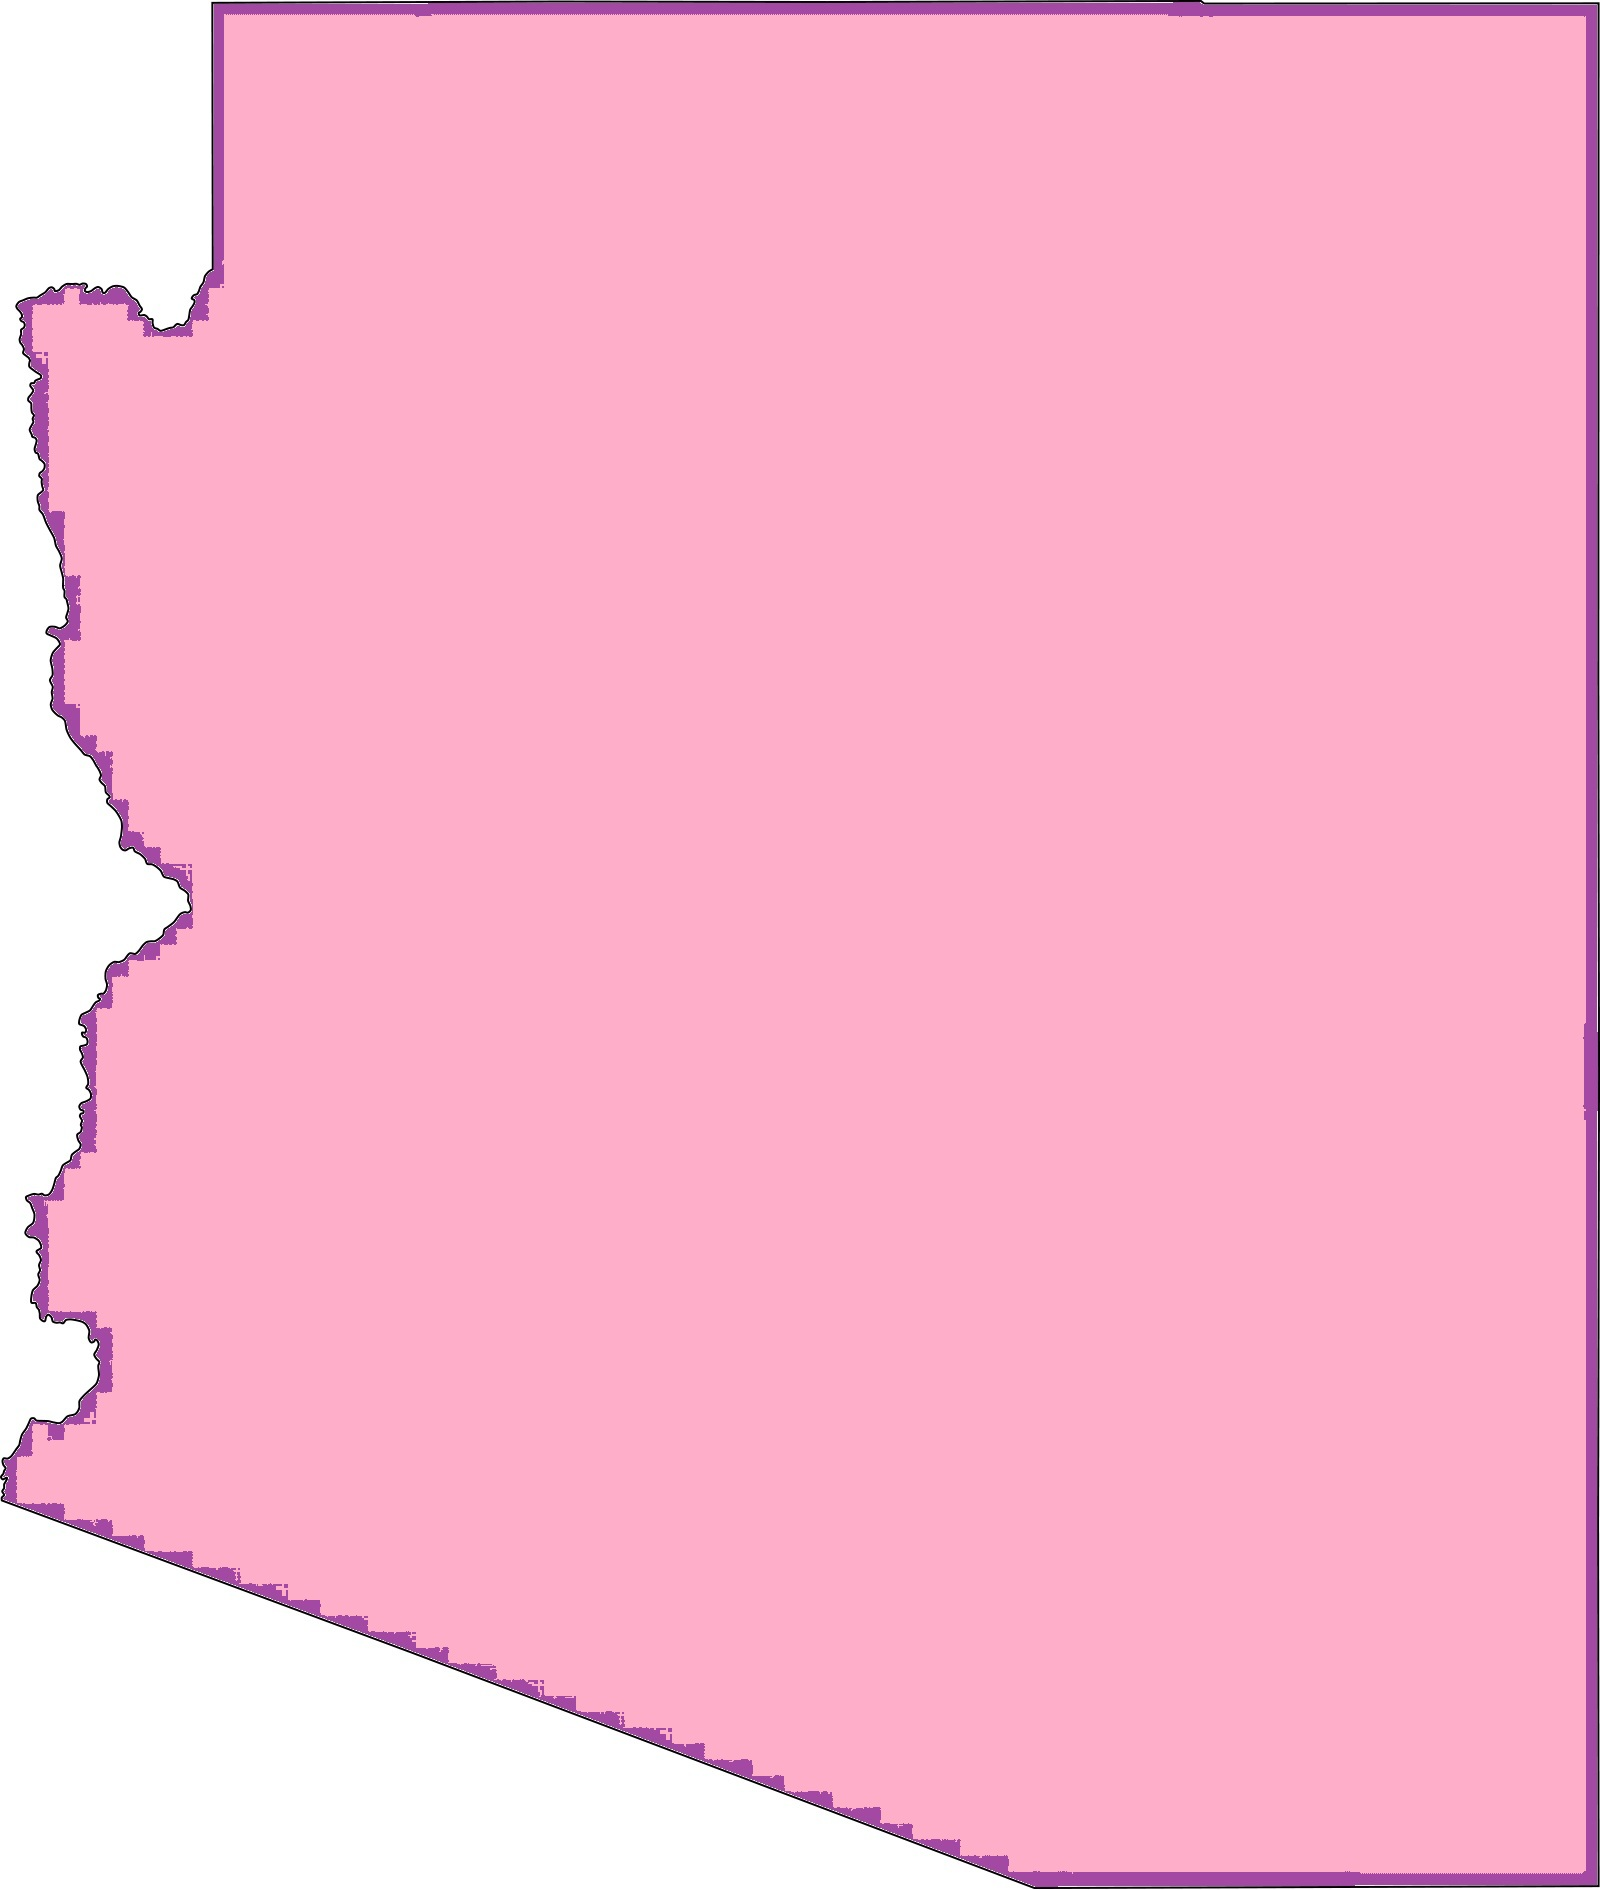 Arizona Blank Outline Map   Blank Outline Map of Arizona – 5